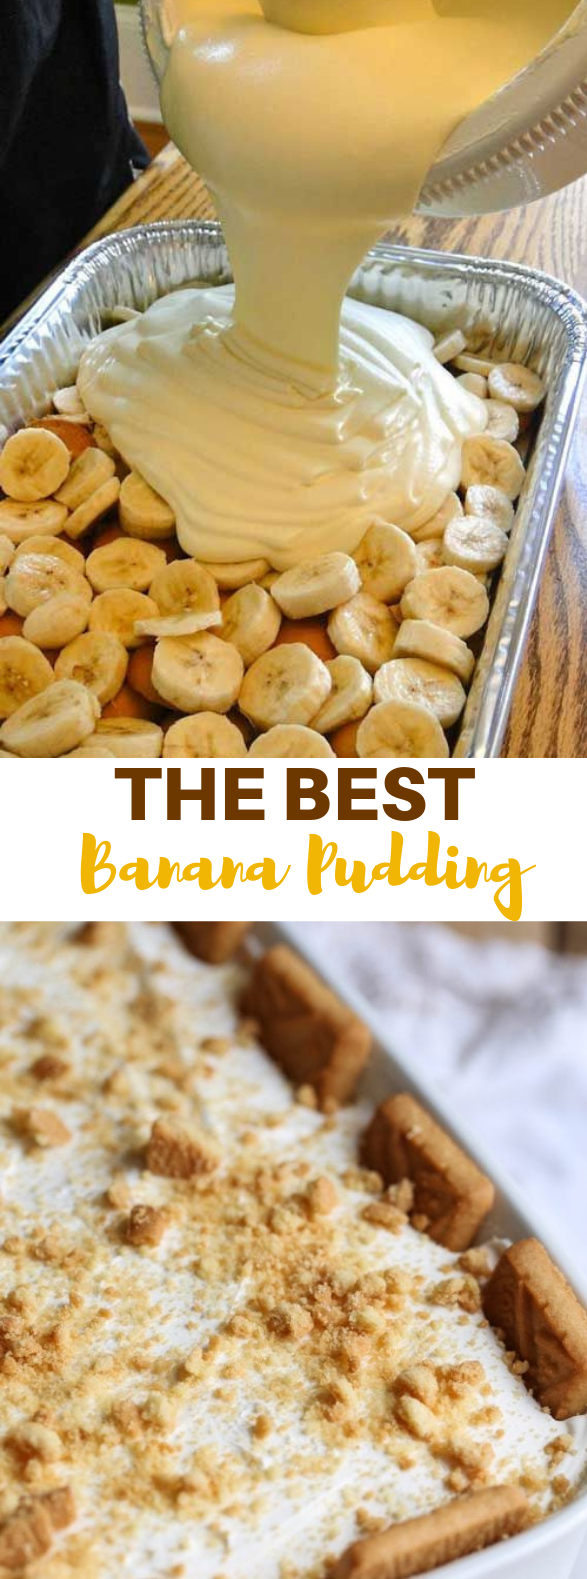 The Best Banana Pudding Ever #Banana #Sweet